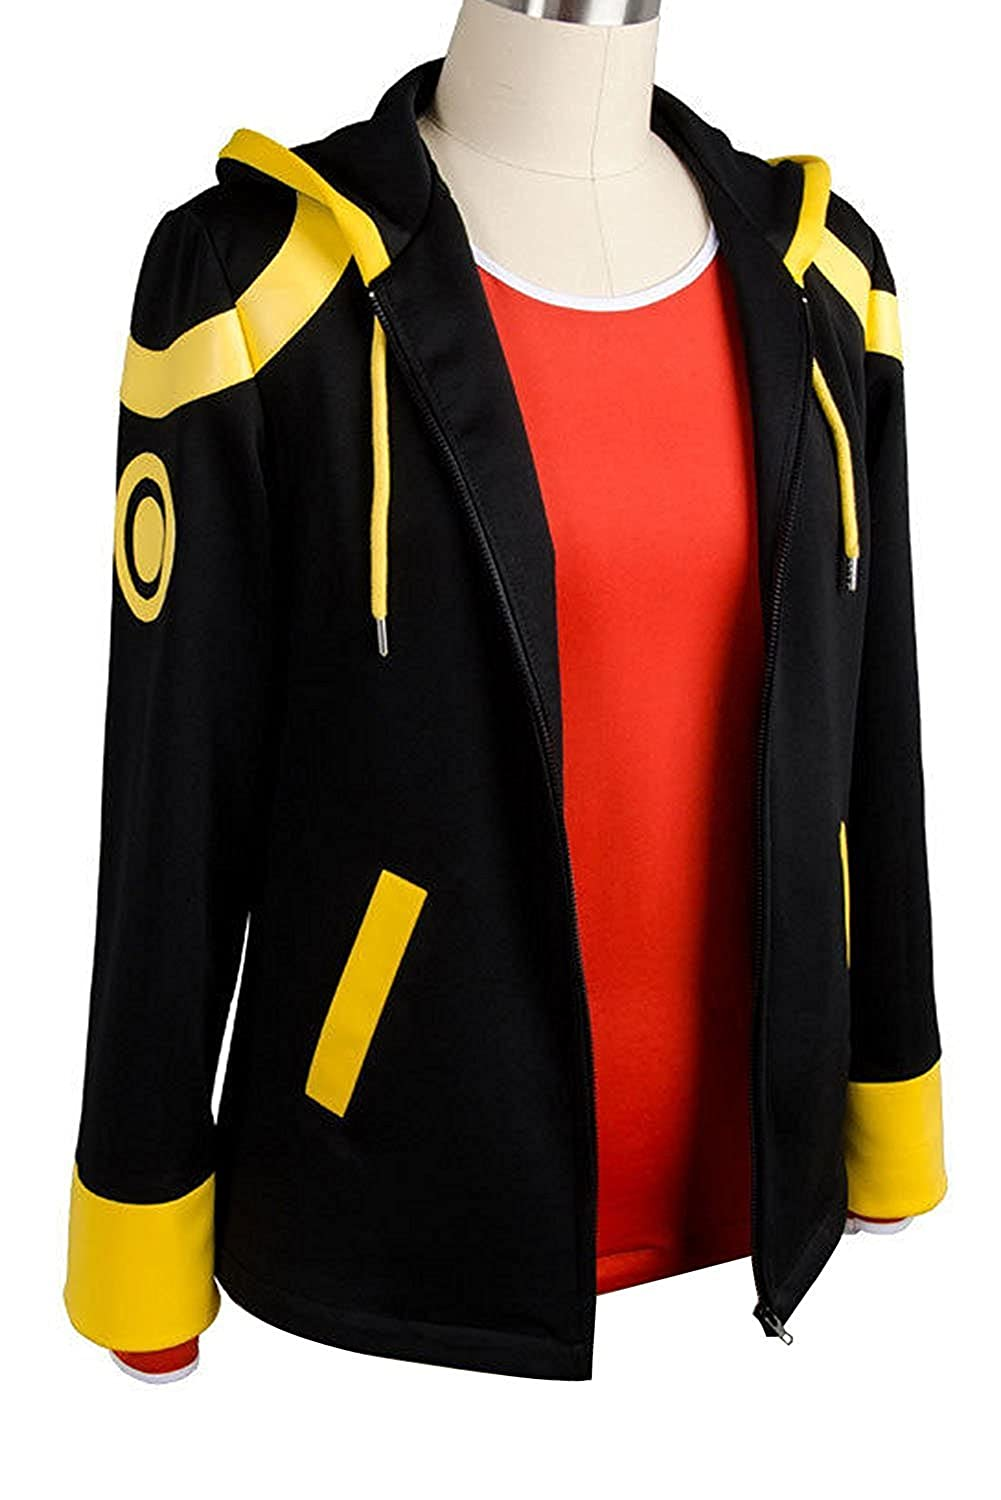 Amazon.com: mingL Casual Mystic Messenger 707 Extreme Saeyoung Choi Cosplay Costume Jacket Shirt Suit: Clothing